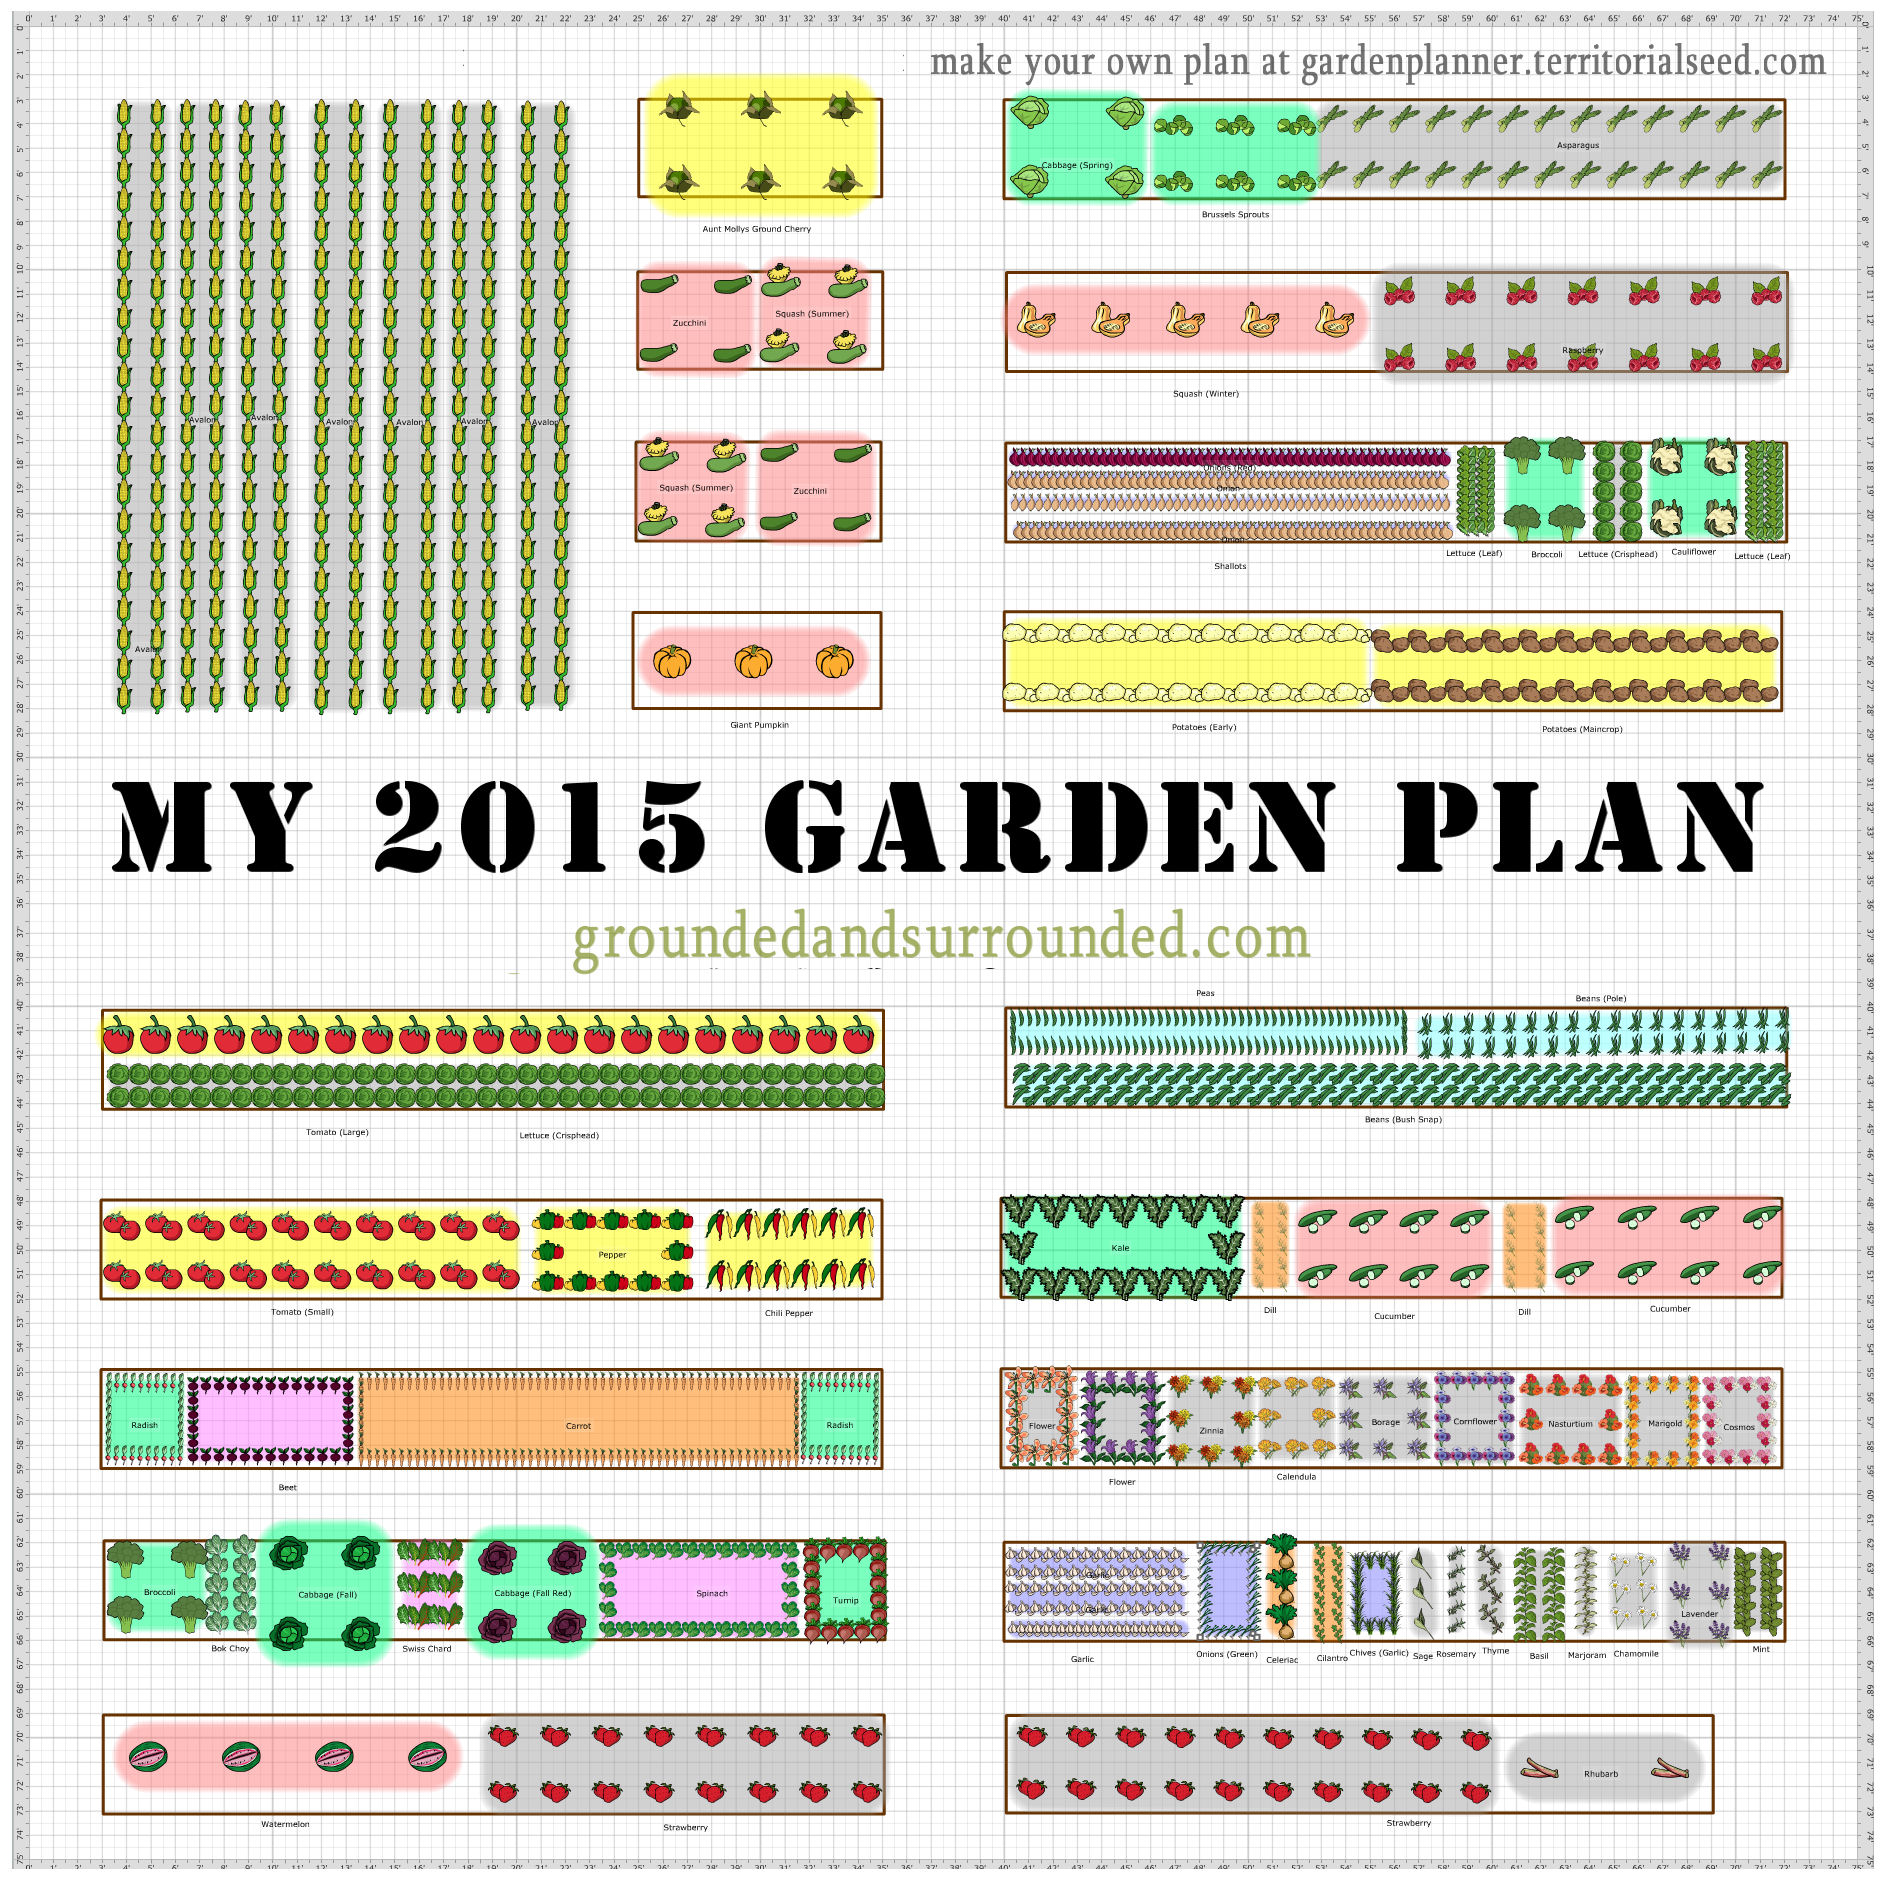 My 5000 Sq Ft Vegetable Garden Plan Grounded Surrounded